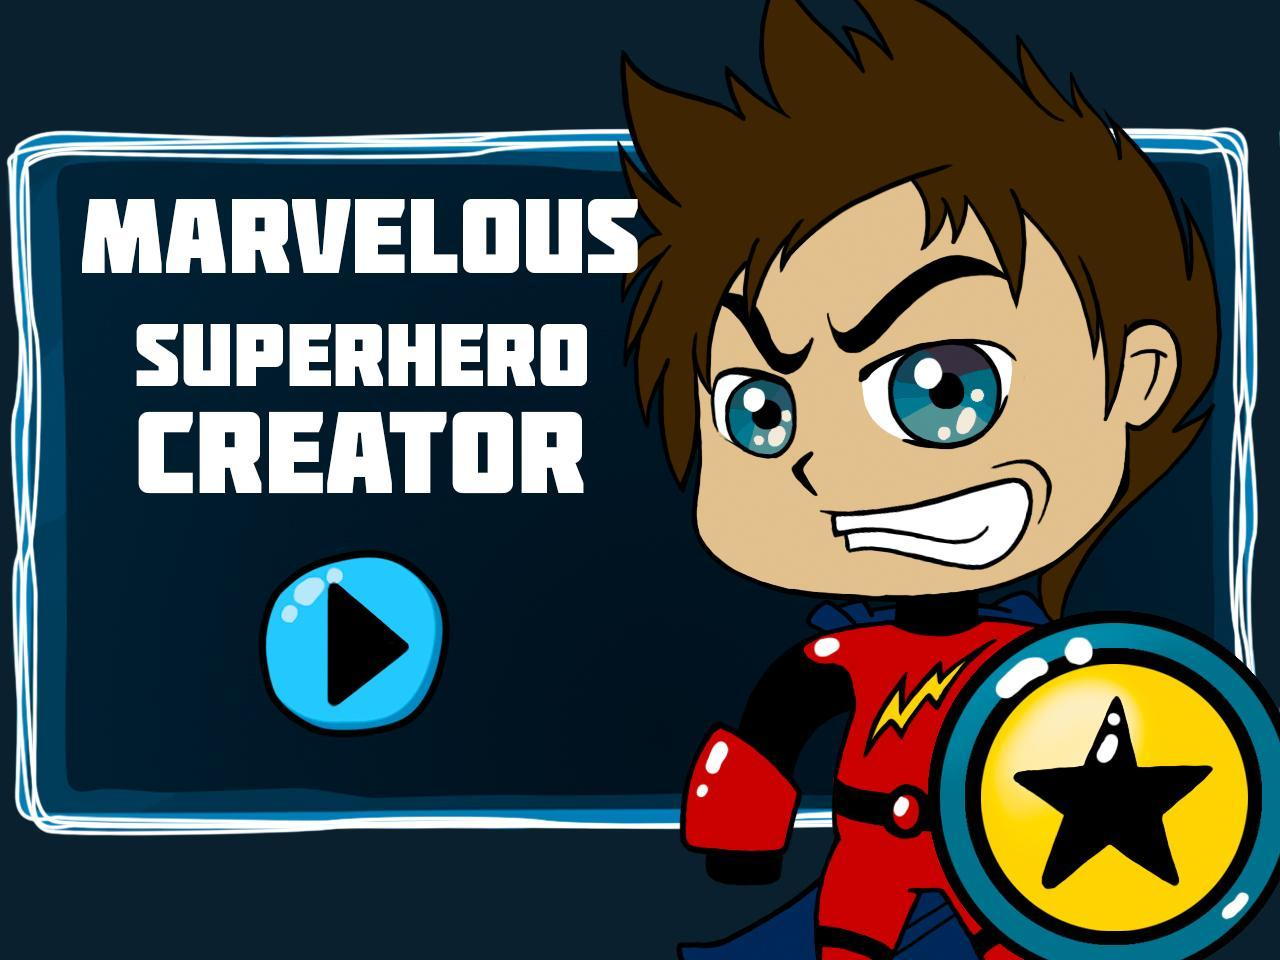 Marvelous Superhero Creator for Android - APK Download